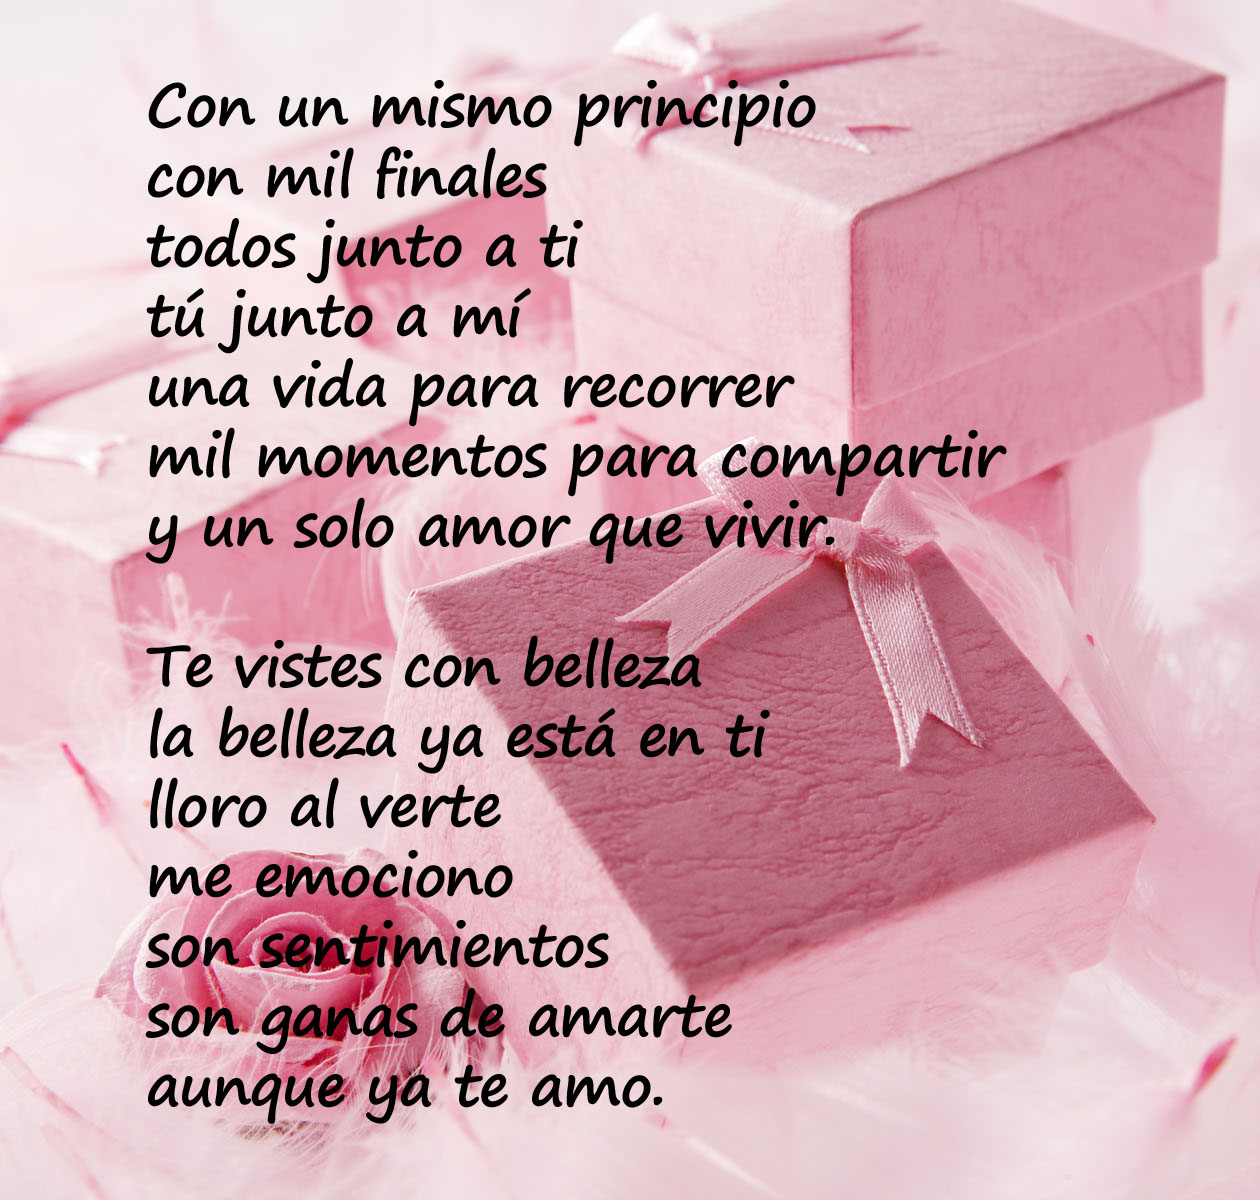 Valentine Poems For Friends In Spanish Thin Blog